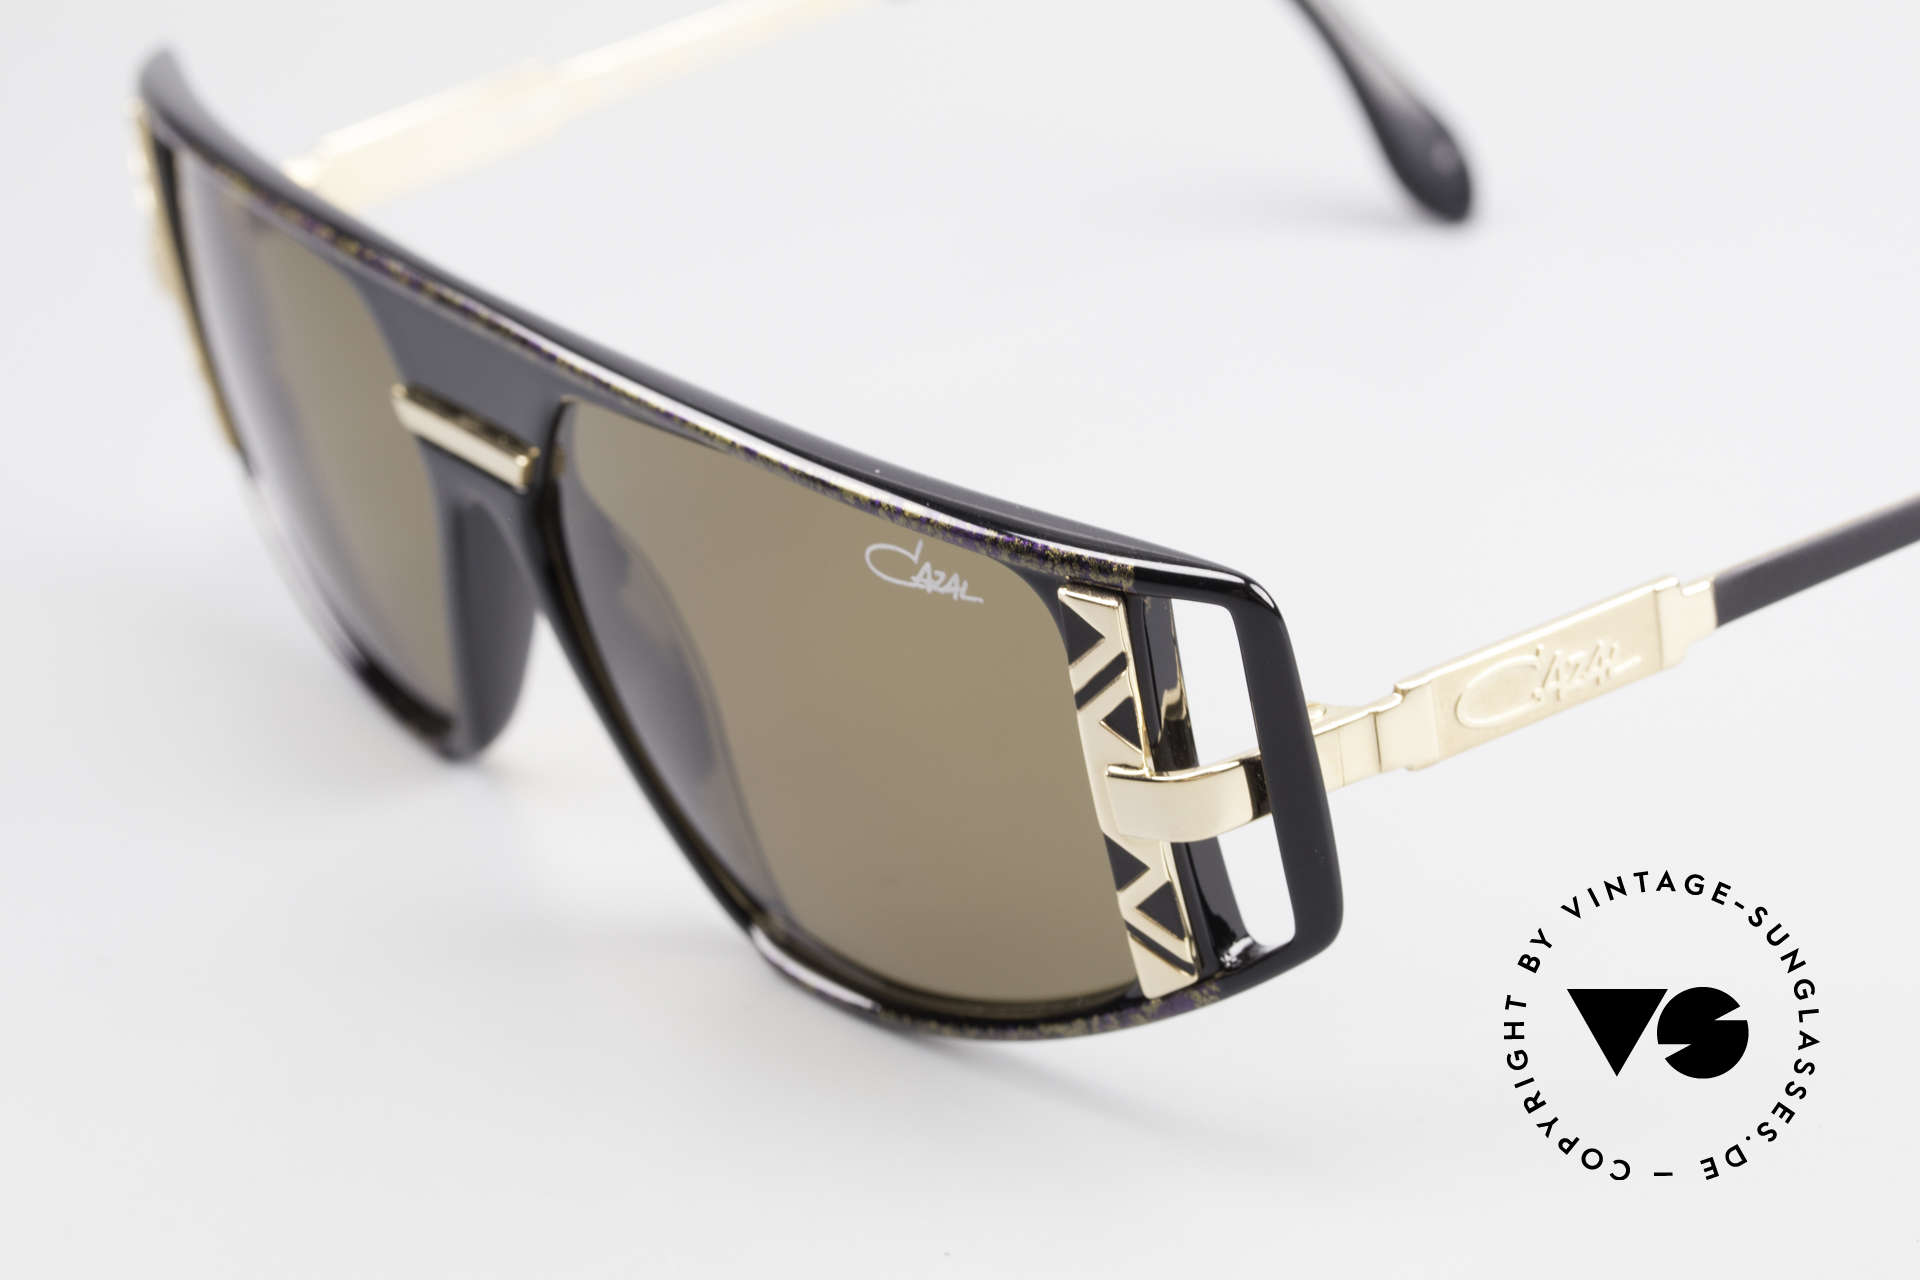 Cazal 874 Legendary 90's Sunglasses, worn by Lady Gaga (MTV interview; December 2009), Made for Men and Women